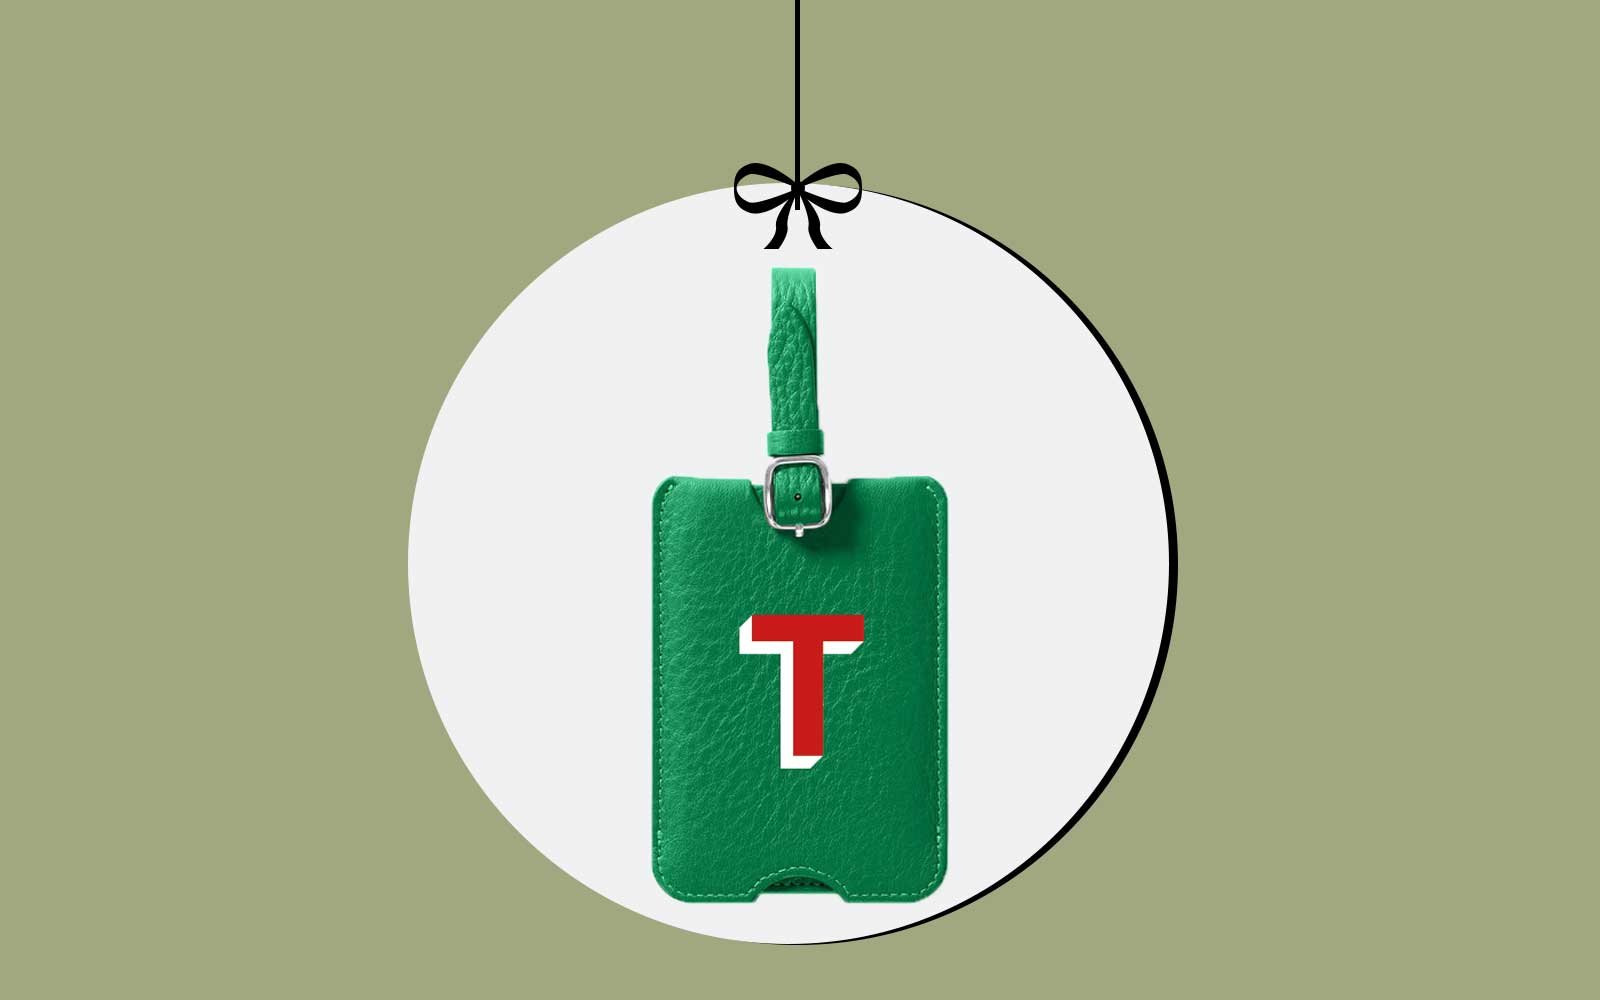 personalized-luggage-tags-GGPTAGS1019.jpg